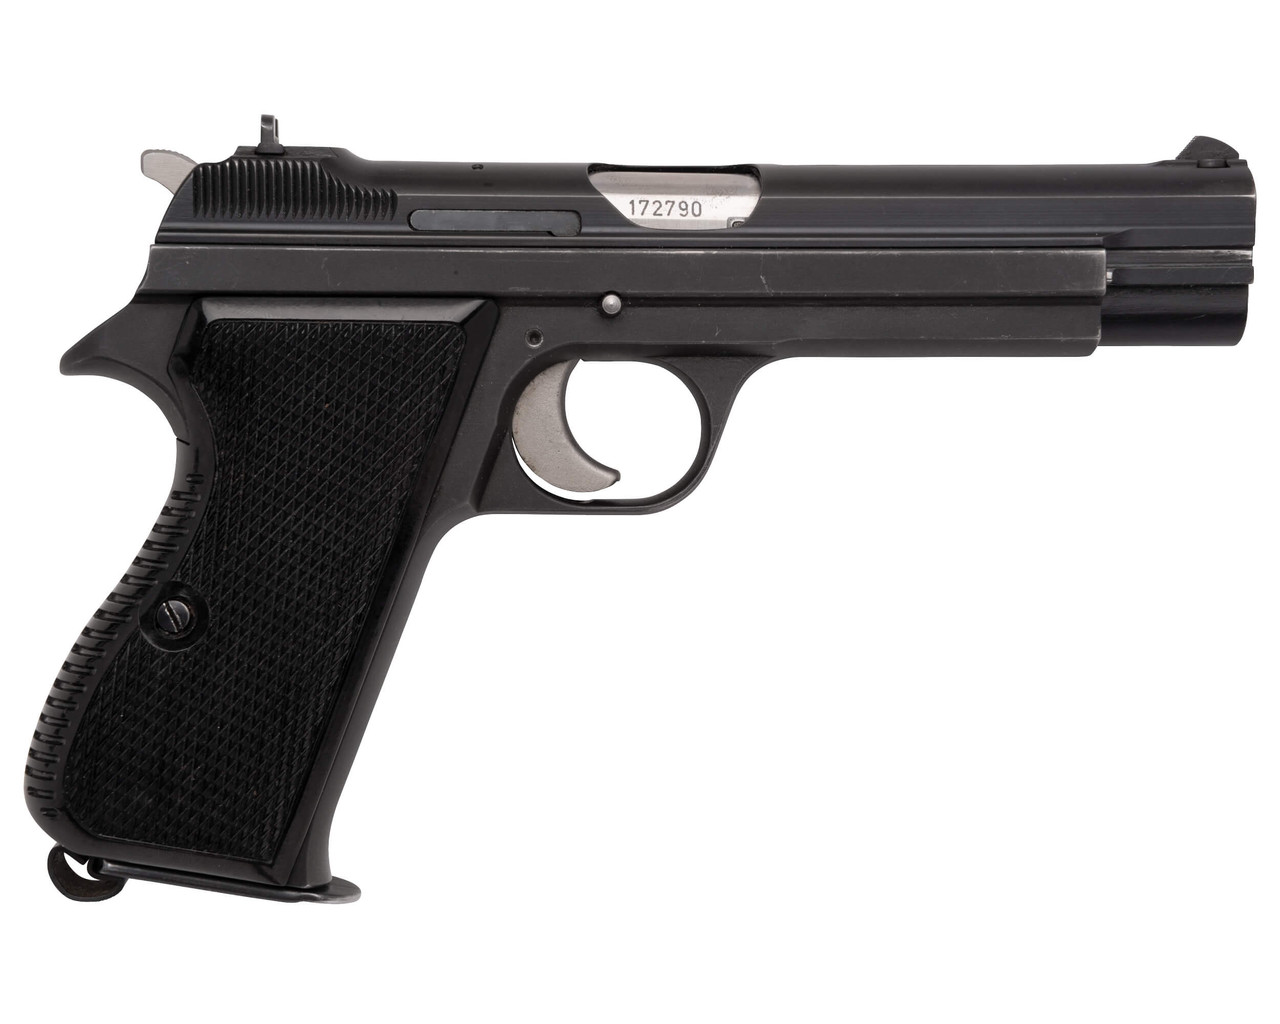 Swiss SIG P49 Officer's Package with Trunk - #2